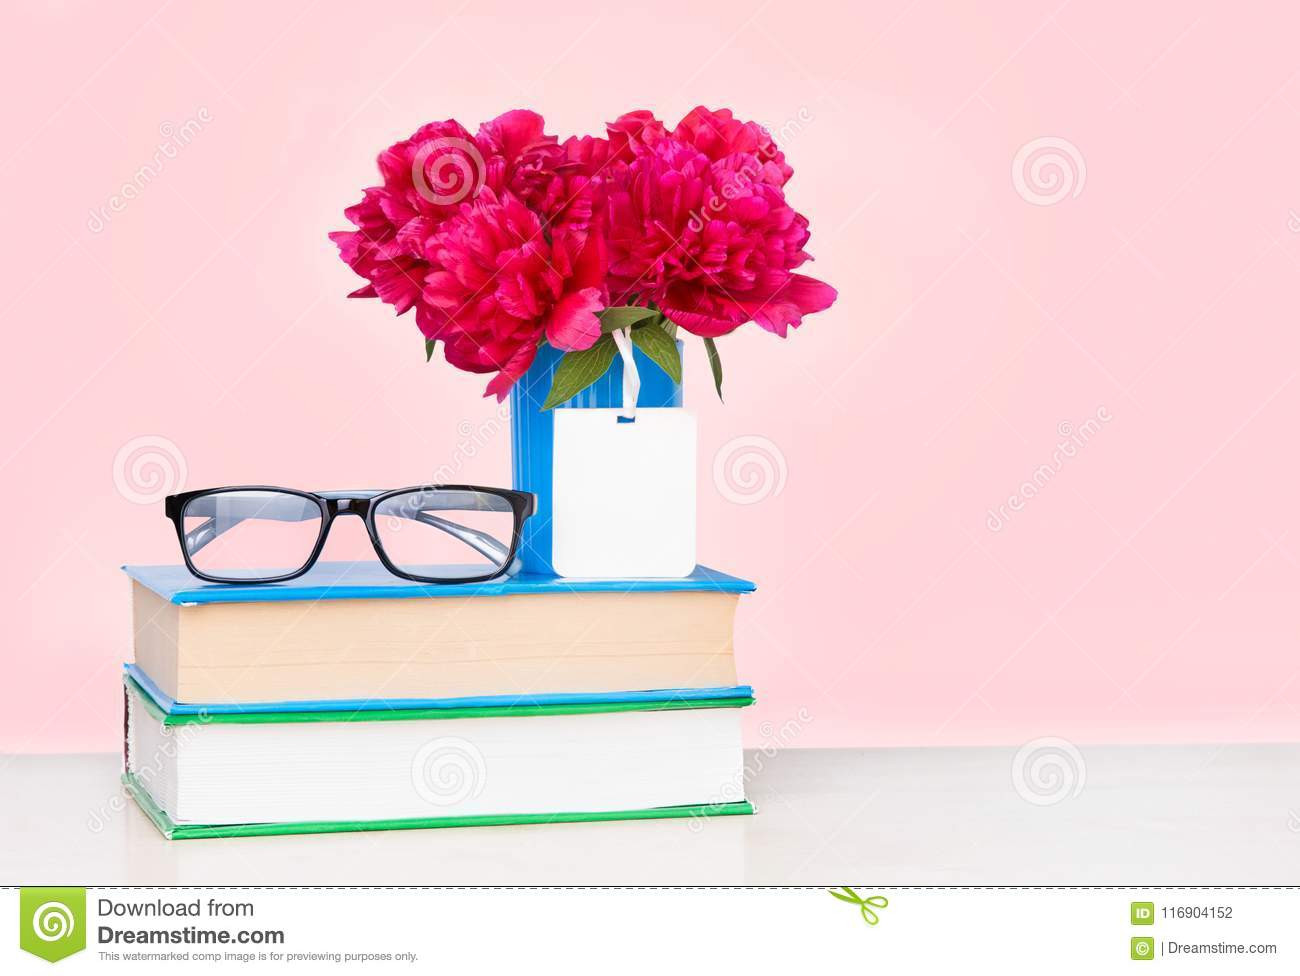 dried flowers for tall vases of a pile of books and a vase of flowers on a wooden table stock photo with regard to a pile of books and a vase of flowers on a wooden table